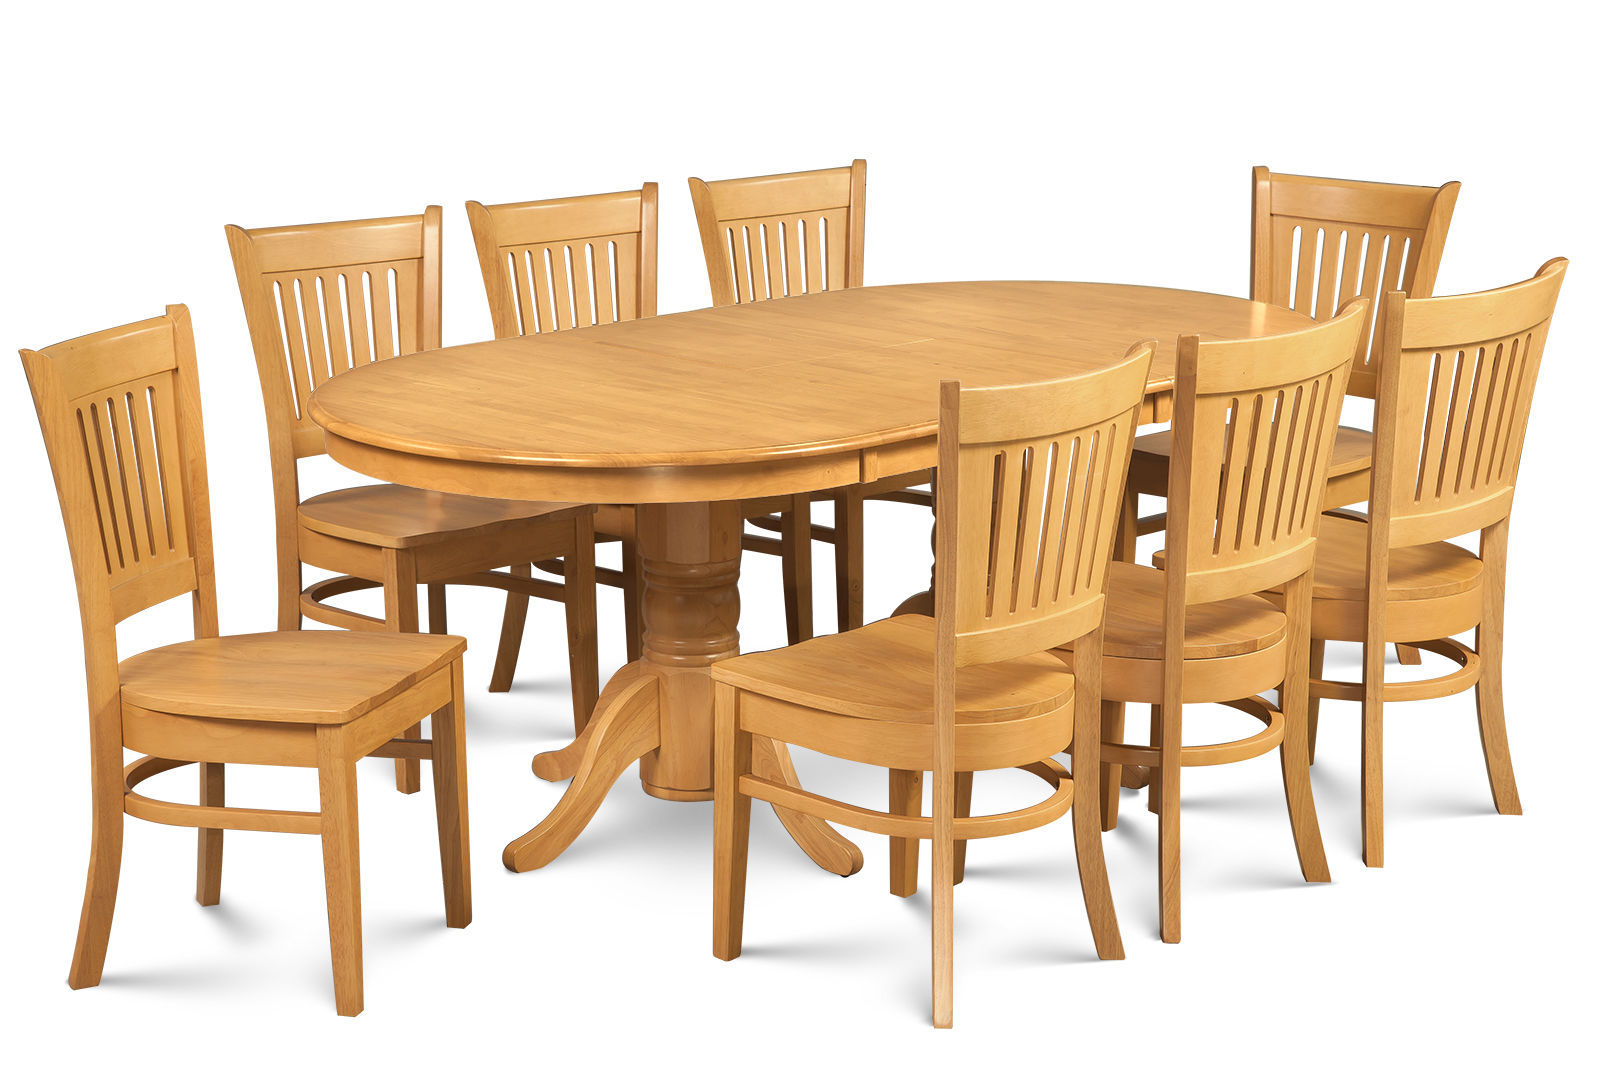 """SOMERVILLE DINETTE DINING ROOM TABLE SET 42""""X78"""" W. WOODEN SEATS IN OAK FINISH"""